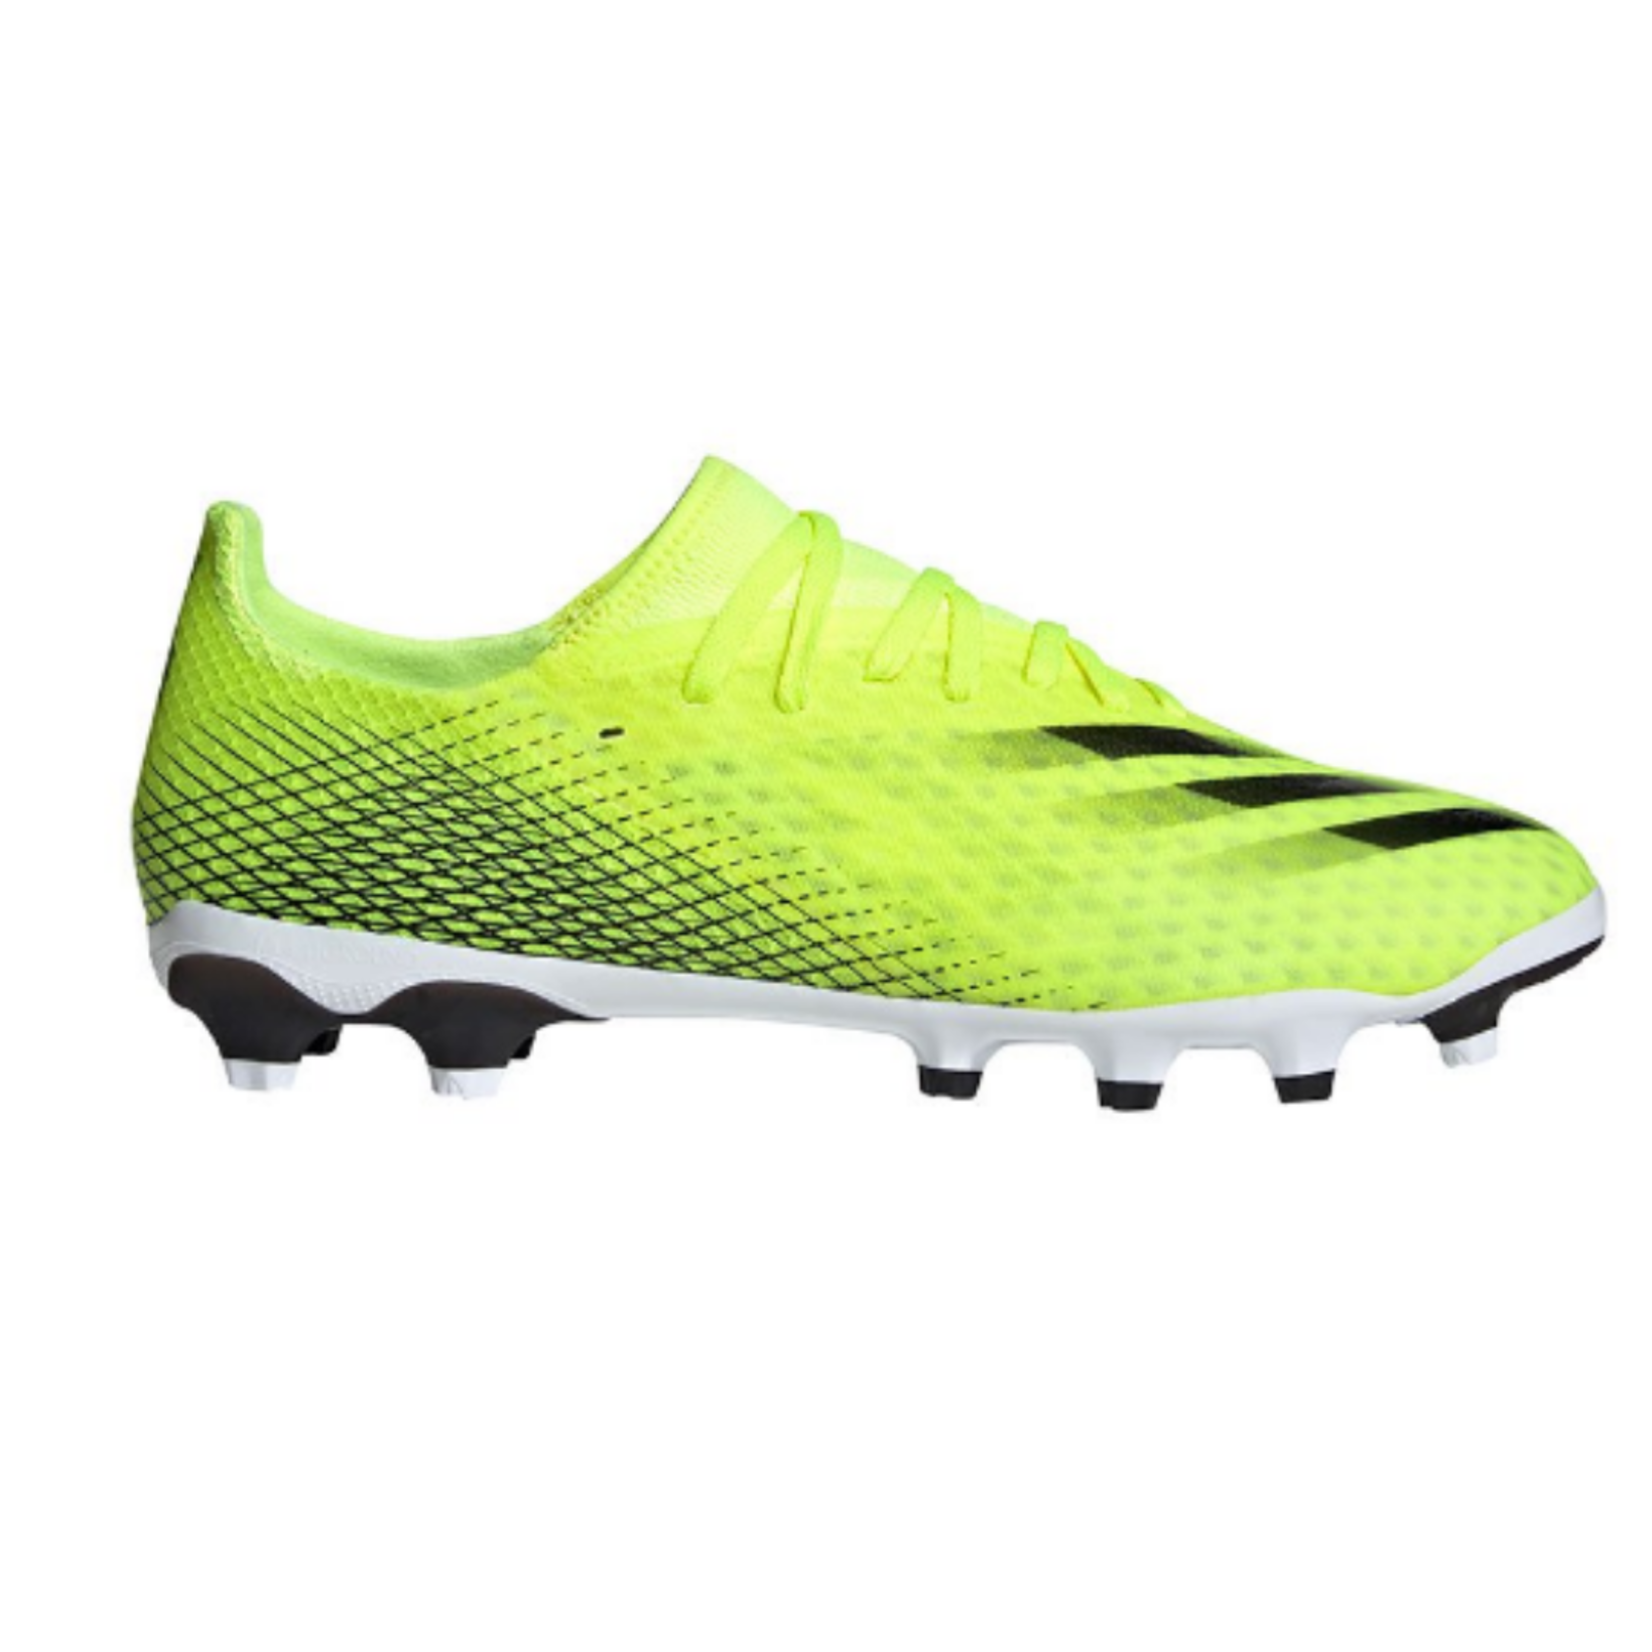 Adidas Adidas X Ghosted.3 FG Soccer Cleat - Jr